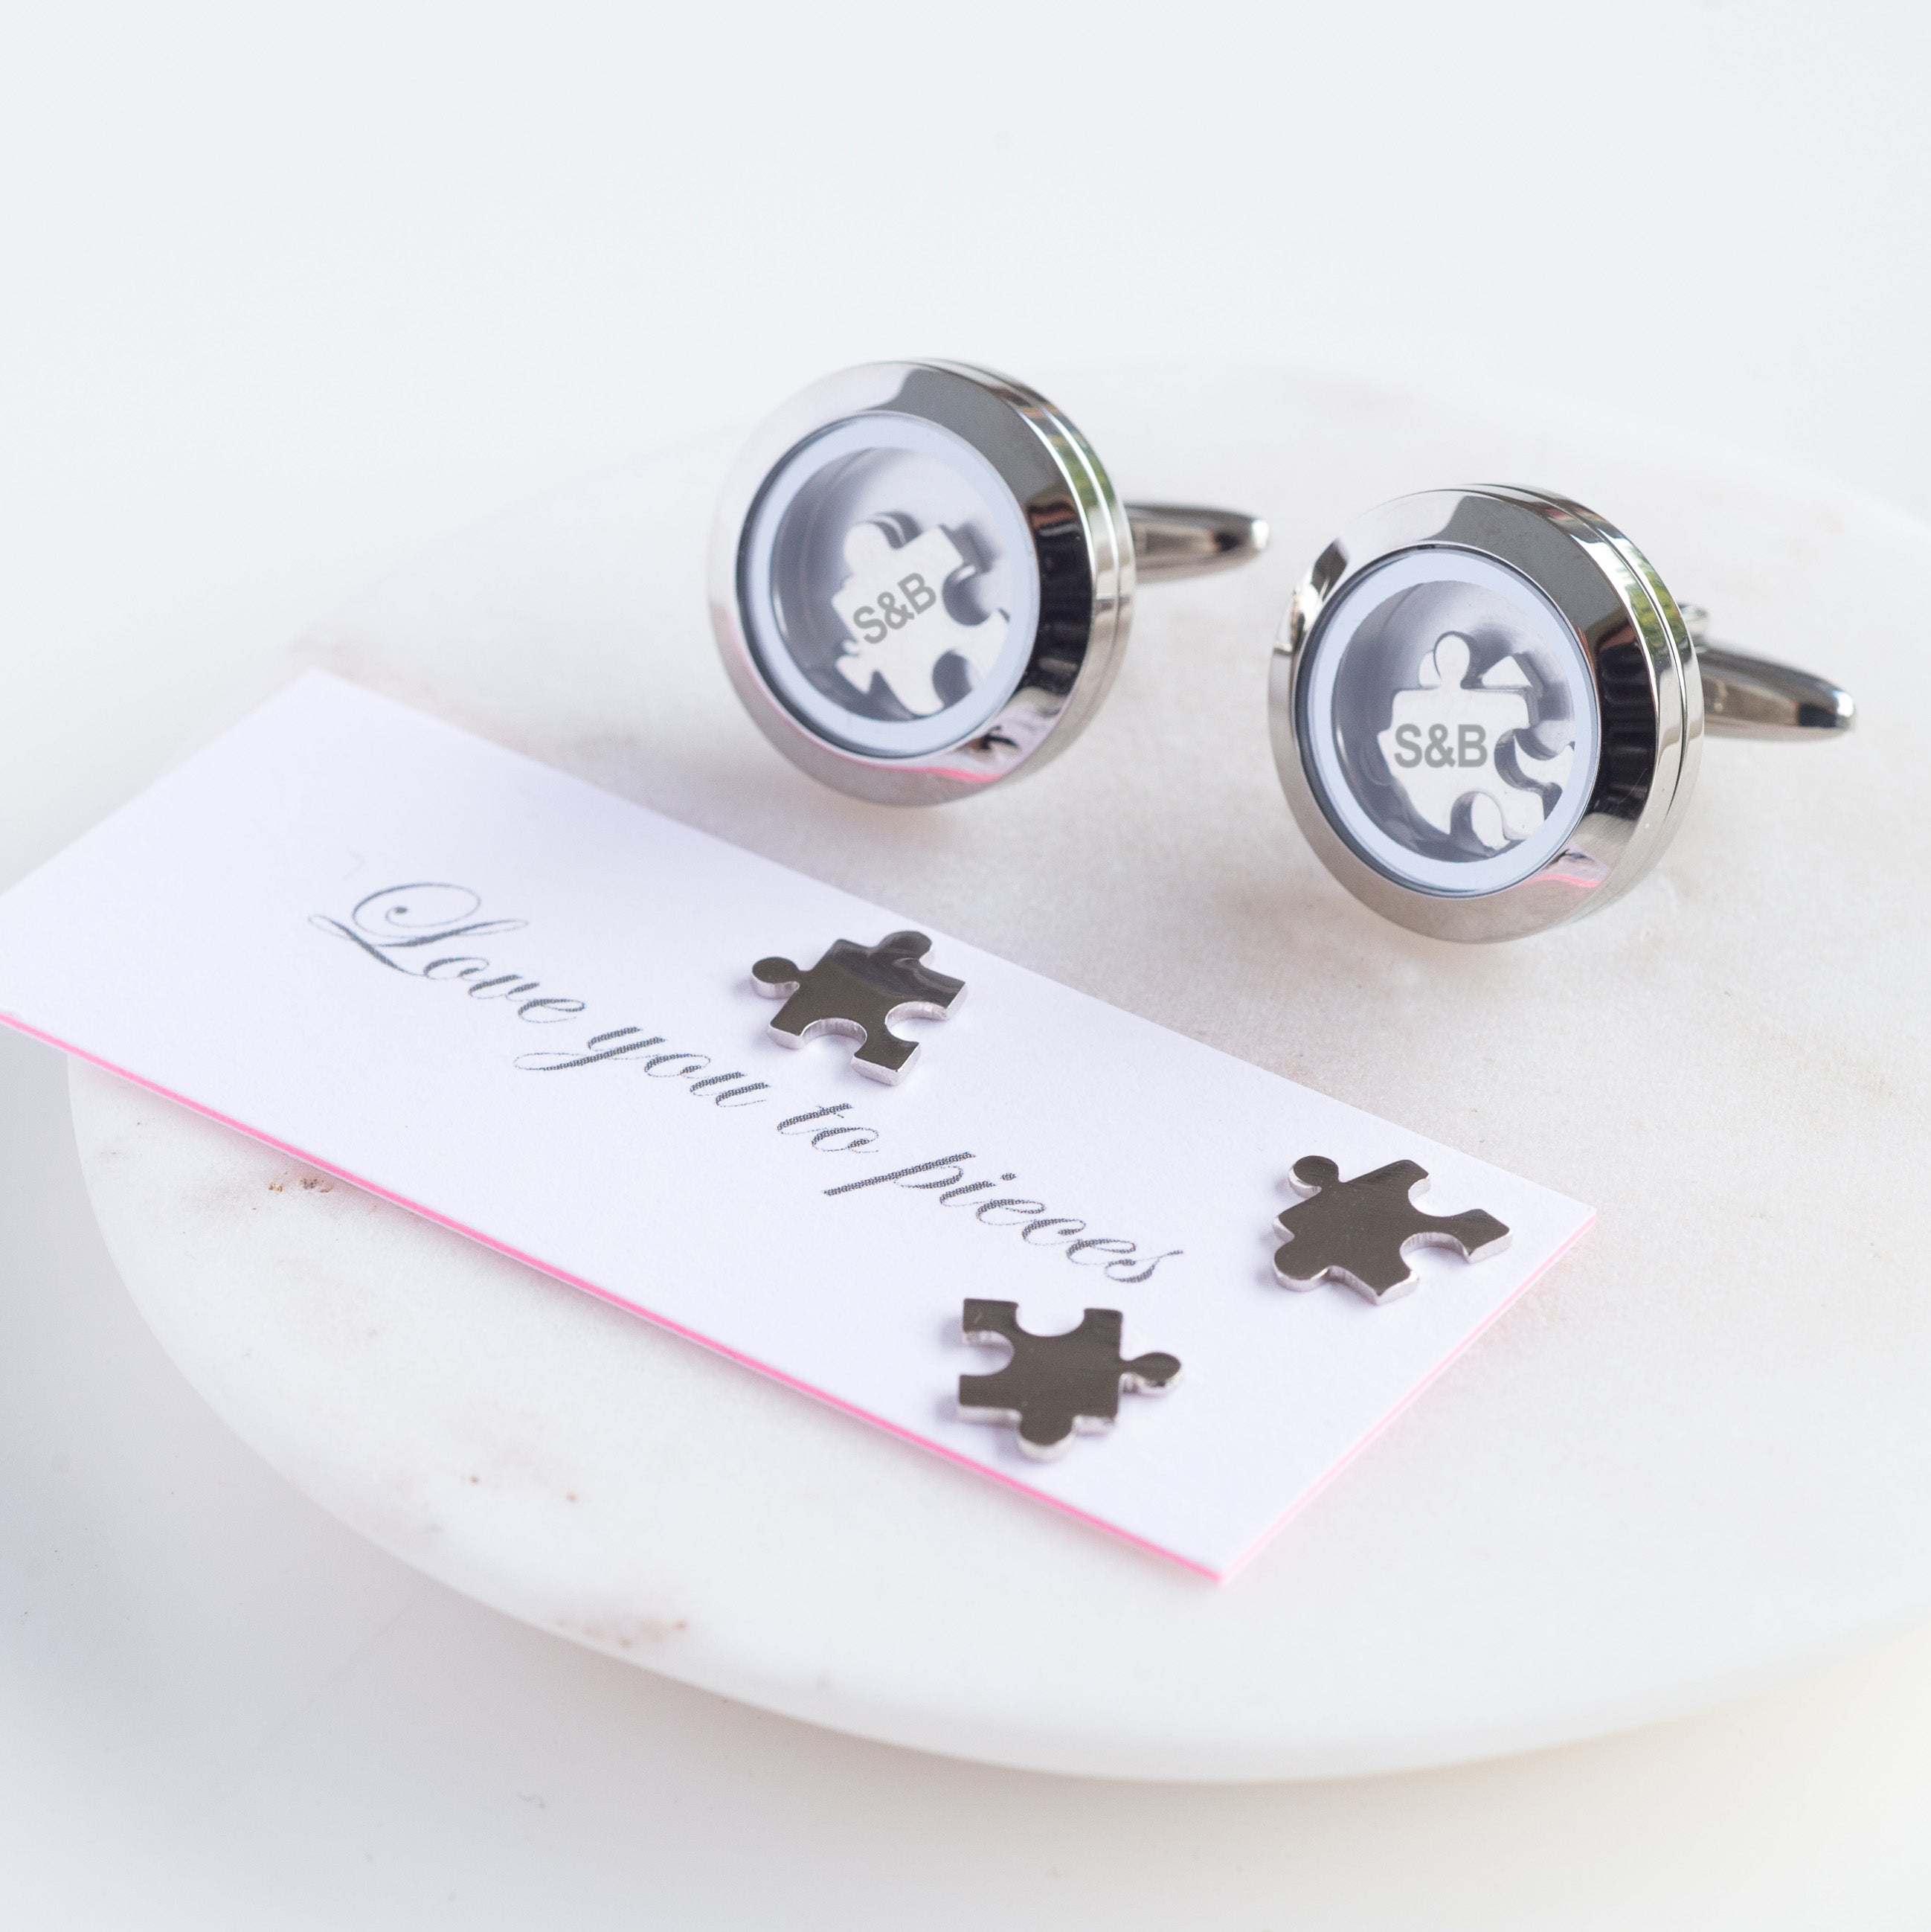 Buying Gifts for Men. Consider uniquely engraved cufflinks or cutting edge tech items.